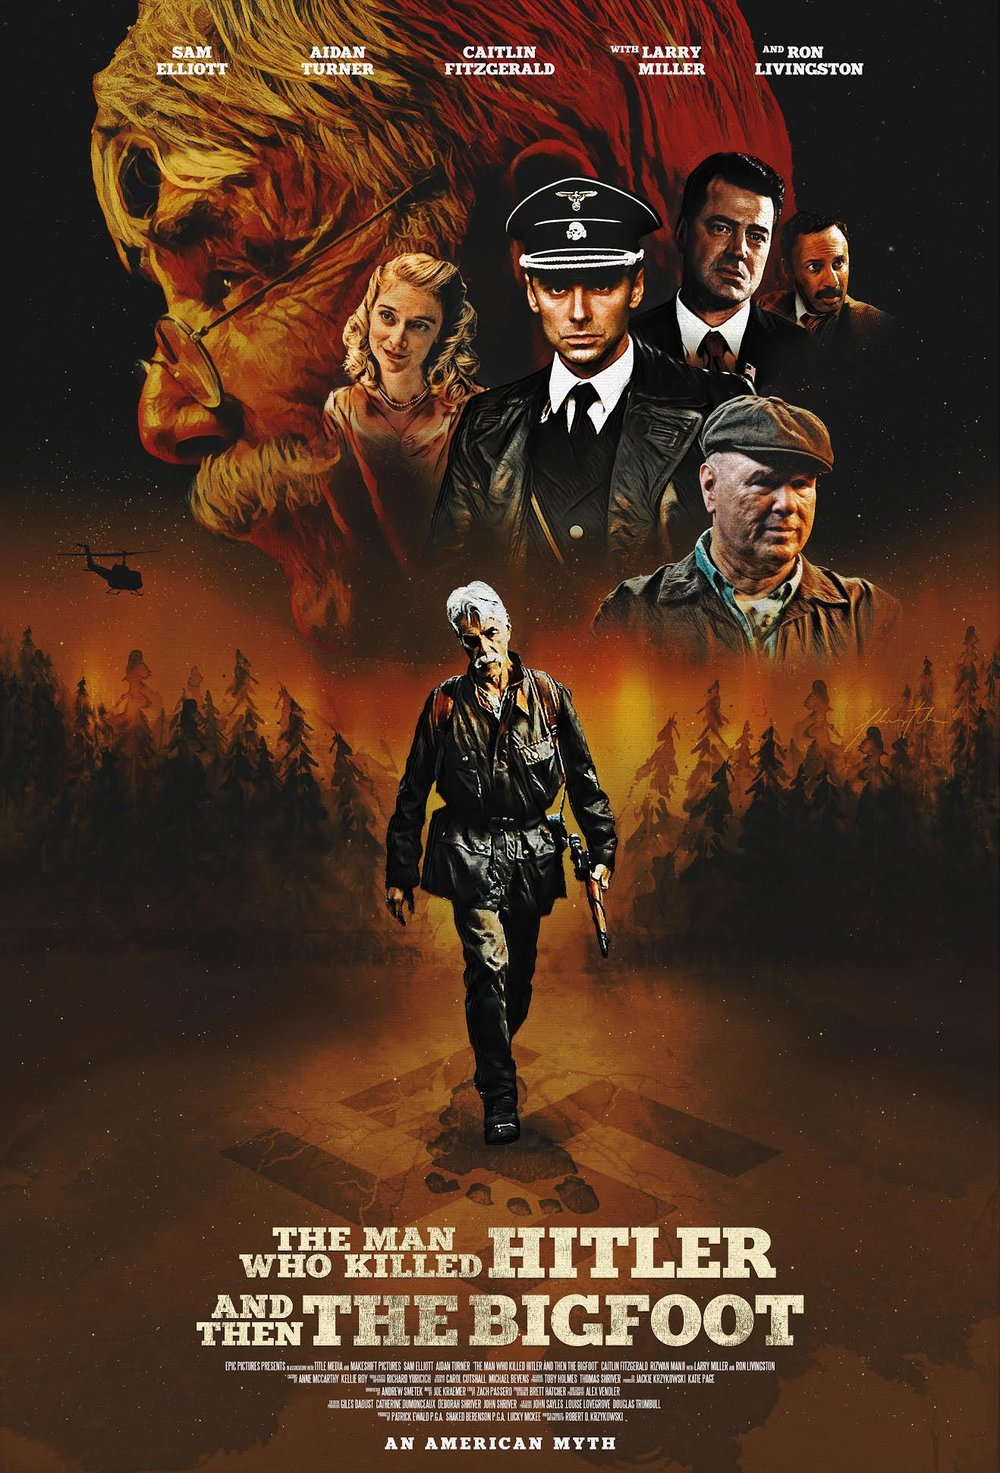 poster-art-for-sam-elliotts-new-film-the-man-who-killed-hitler-and-then-the-bigfoot1